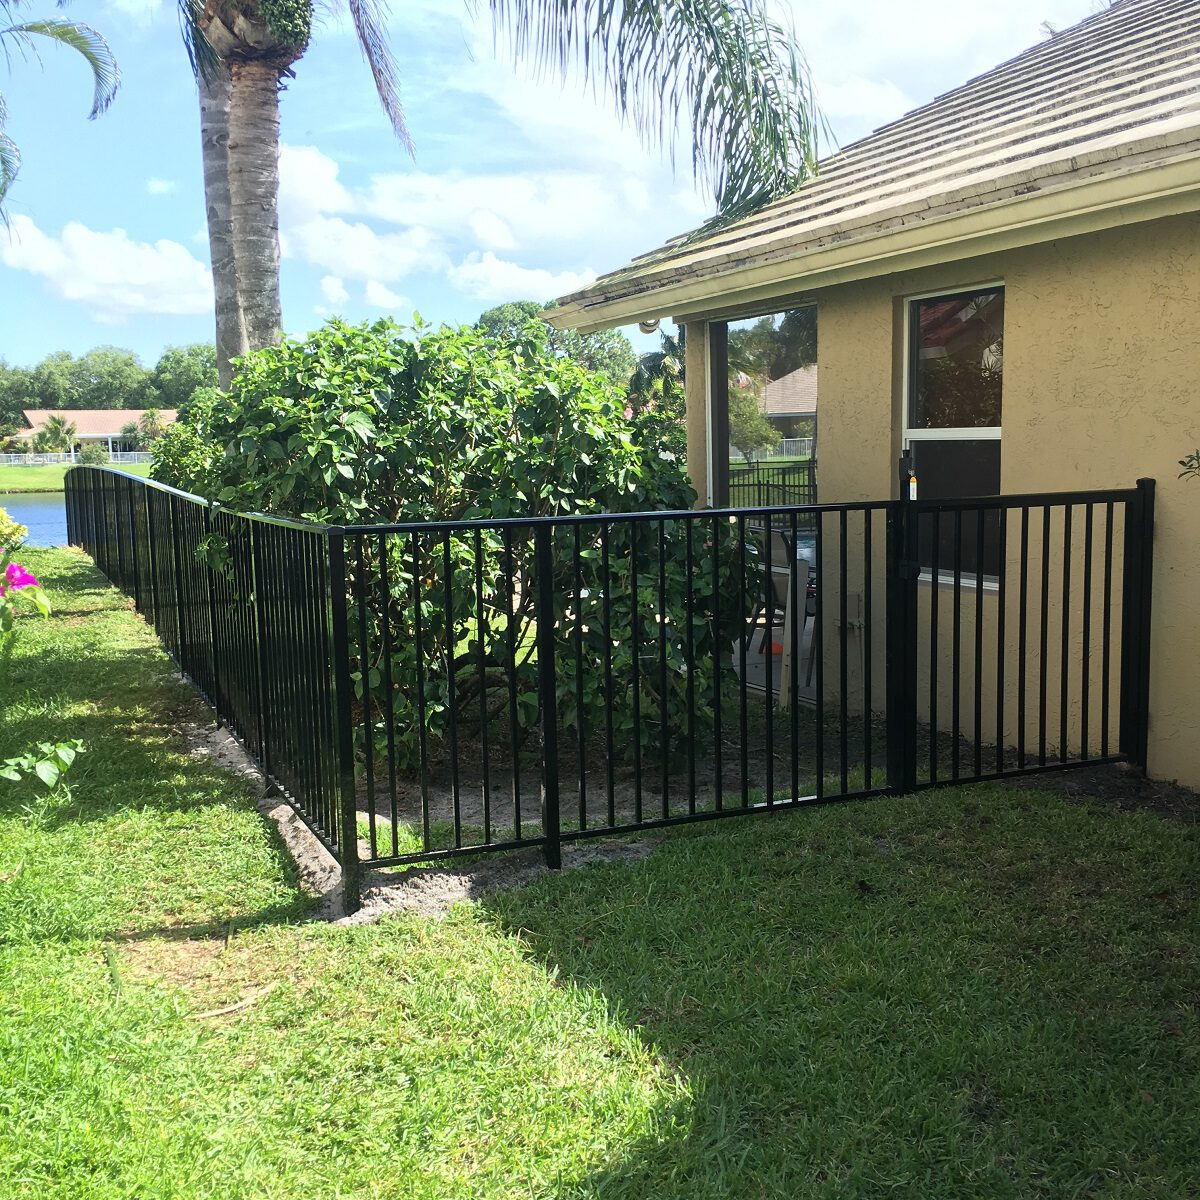 deerfield beach fence builders